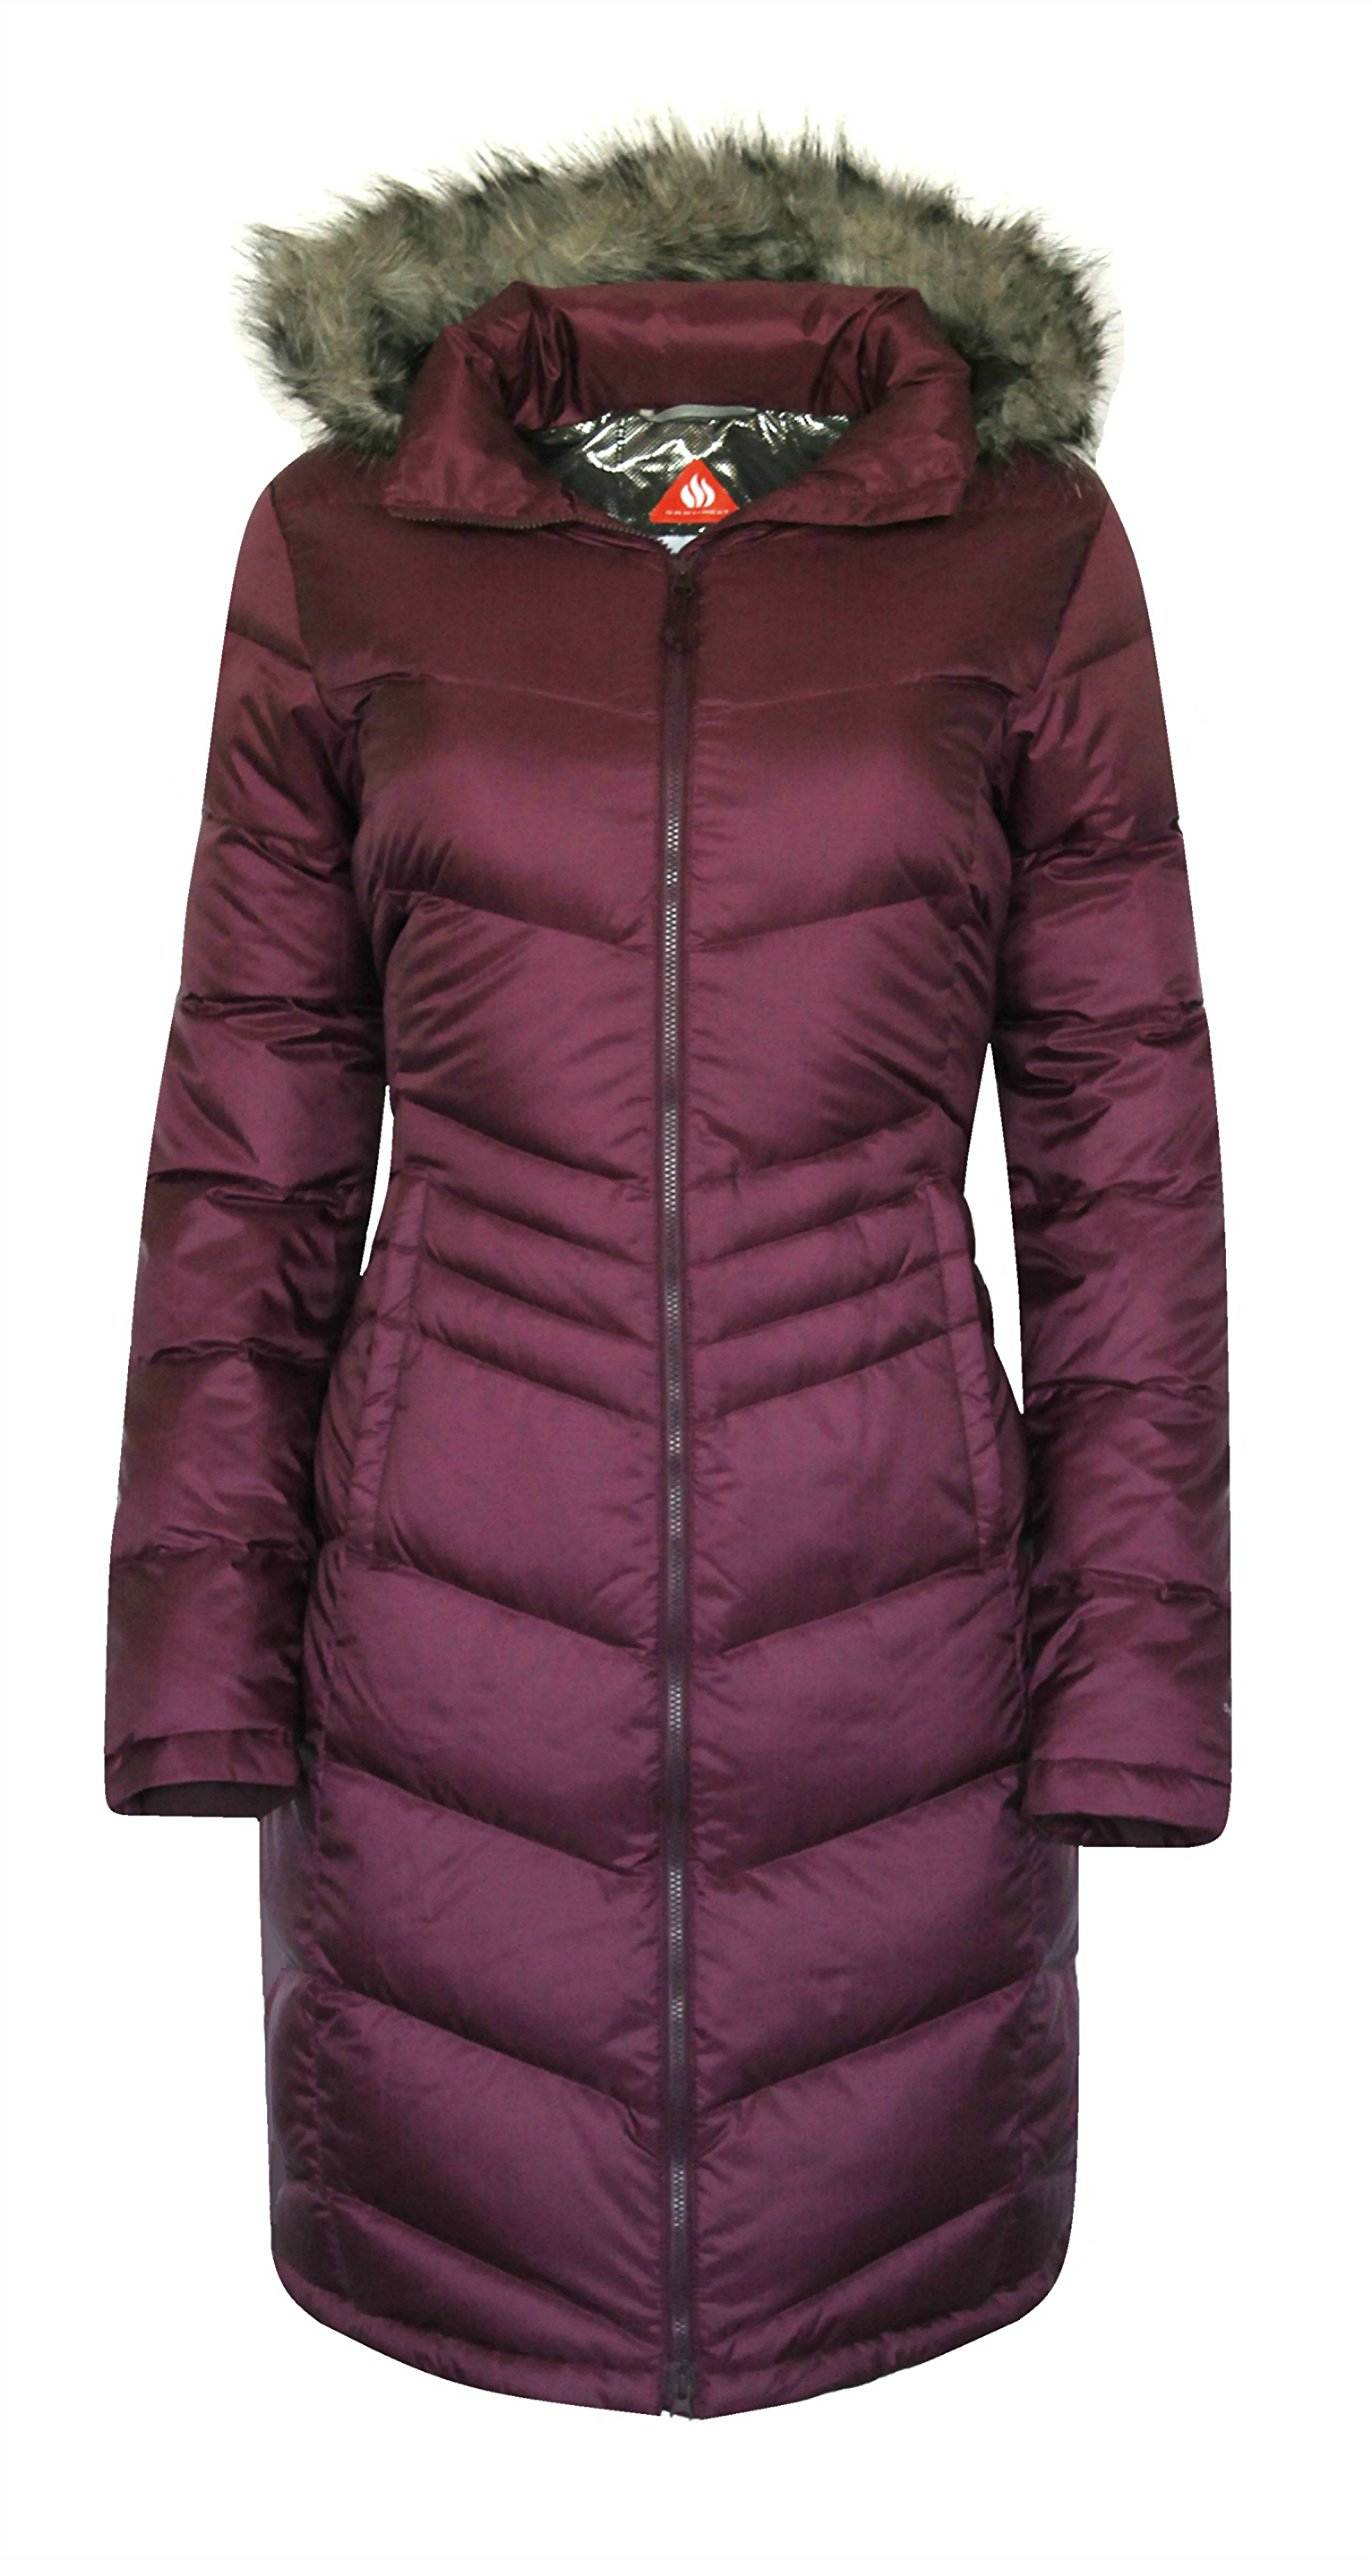 Columbia Women's Polar Freeze Long Down Jacket Omni Heat Warm Winter Coat (MEDIUM, Purple)